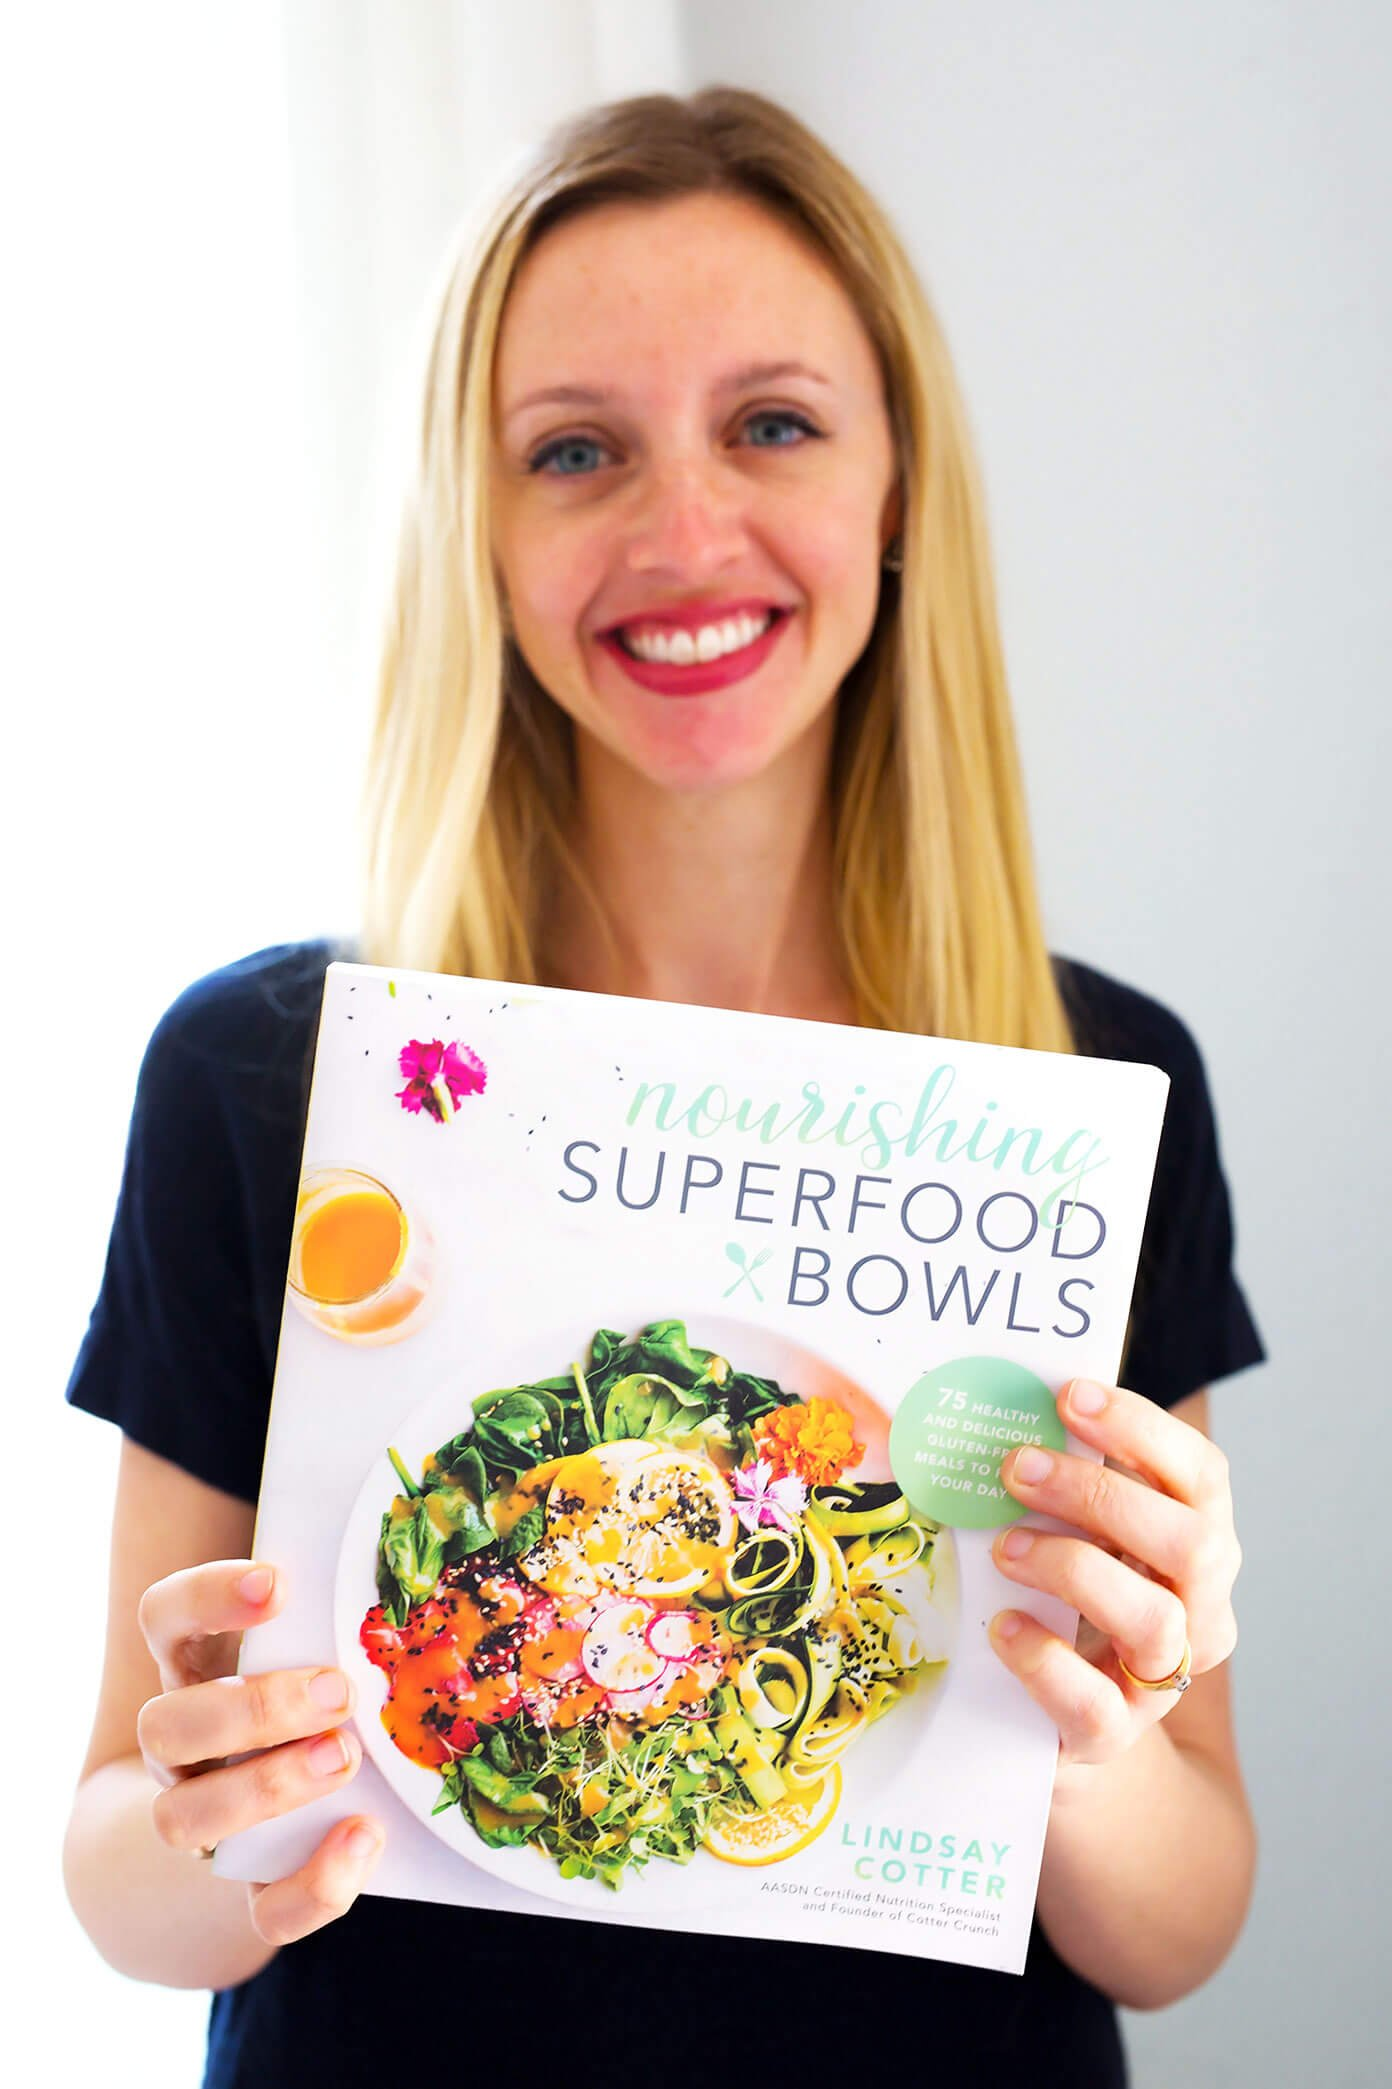 Nourishing Superfood Bowls by Lindsay Cotter